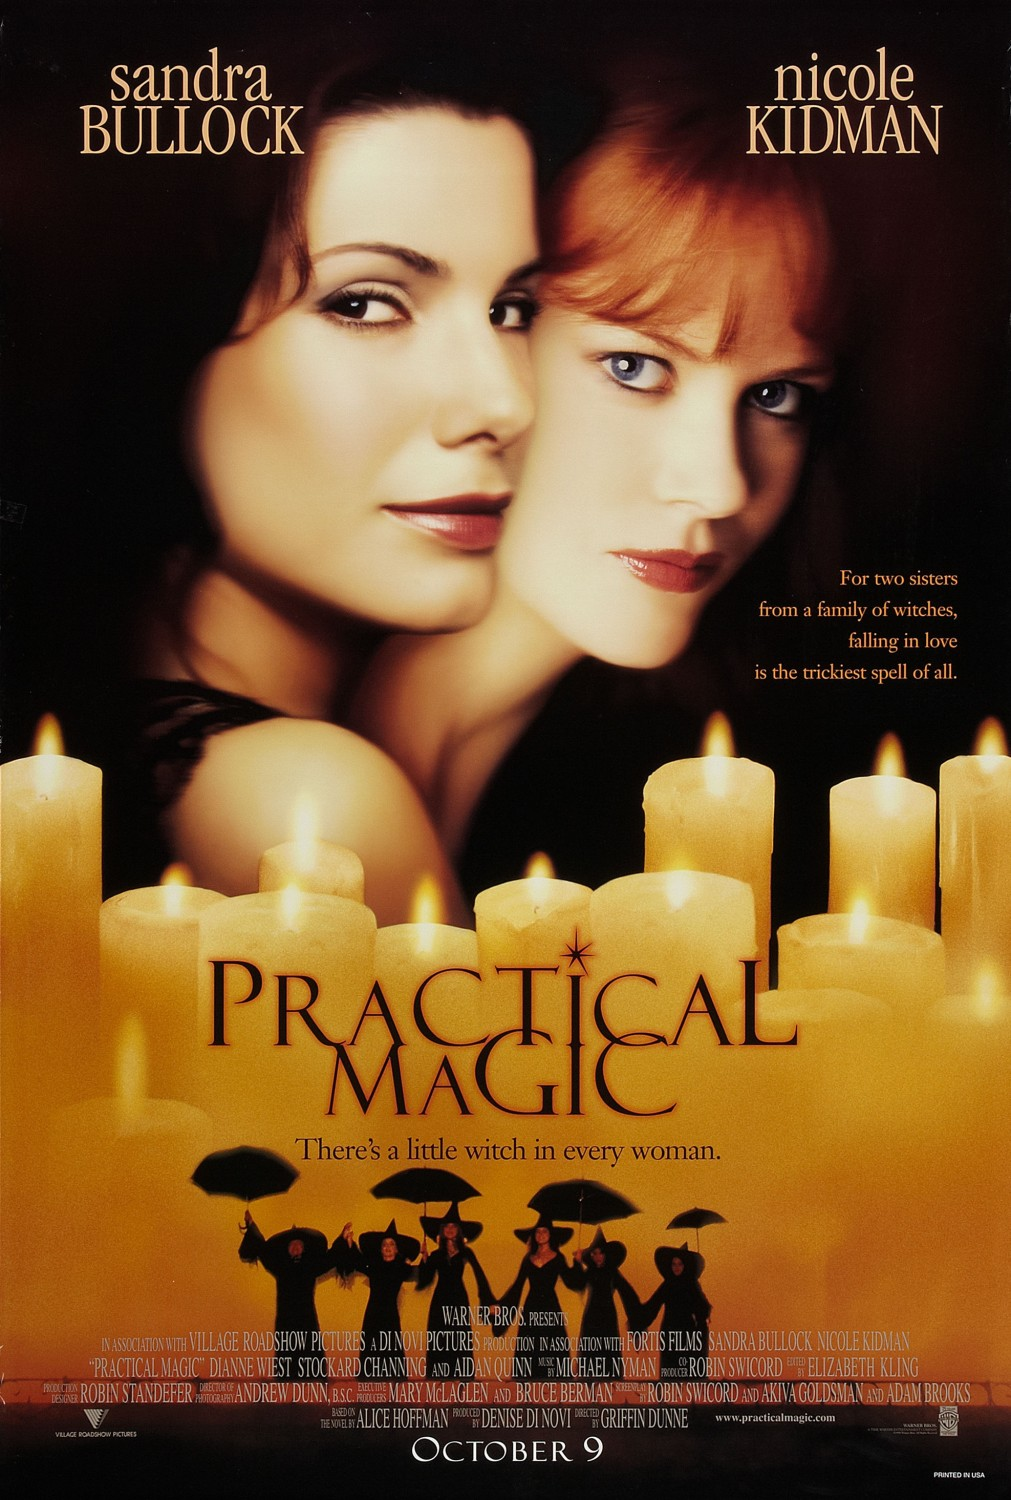 Pildiotsingu practical magic tulemus